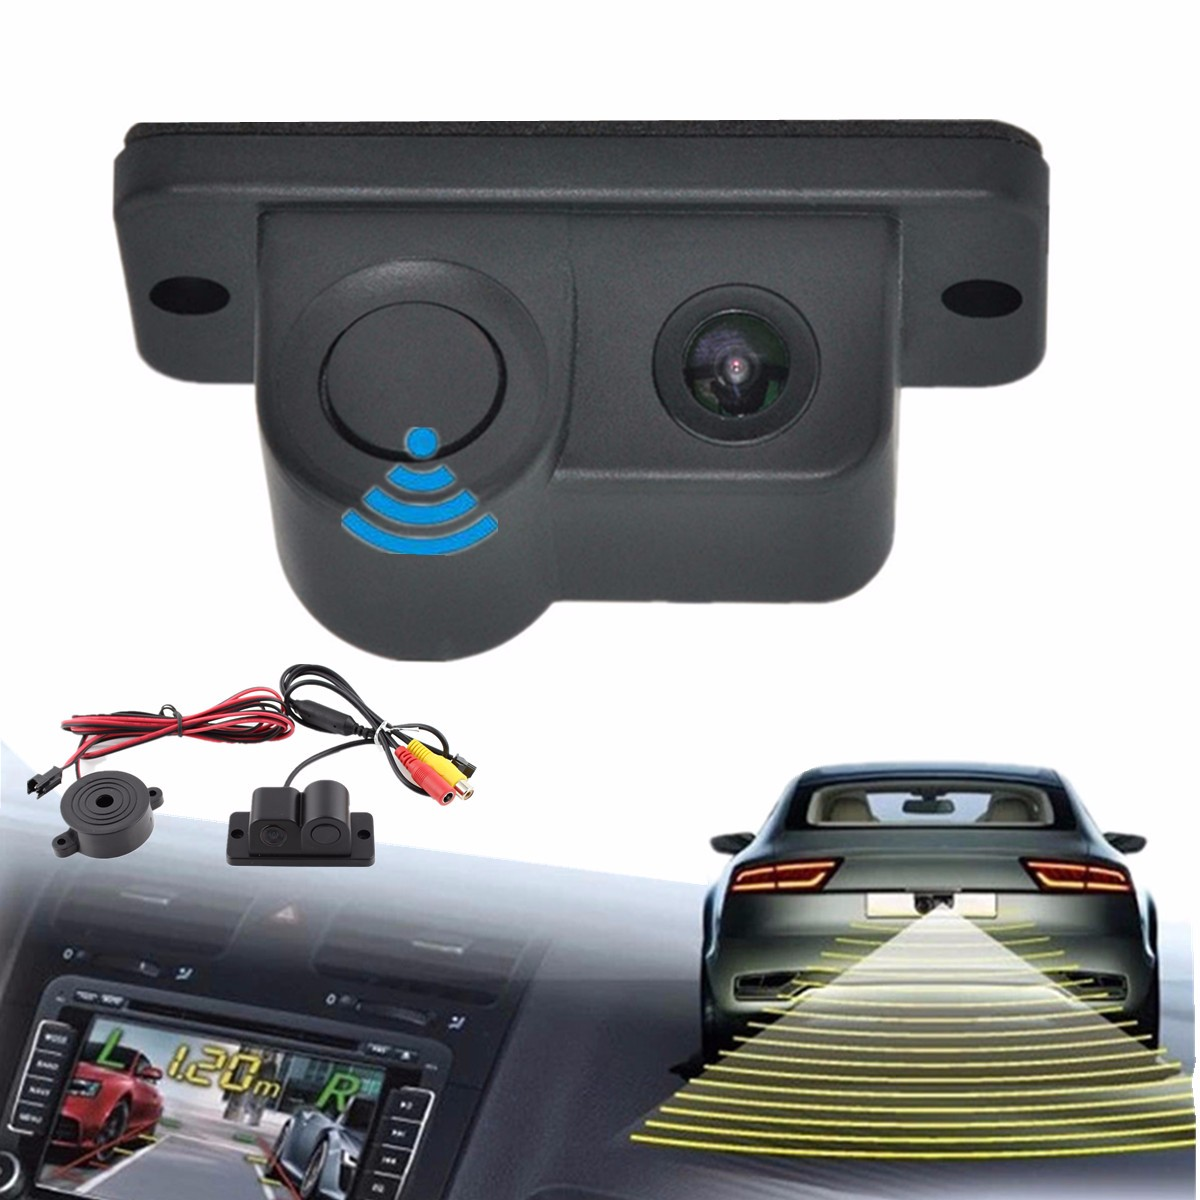 2in1 170º Car SUV Reverse Parking Radar Sensor w/ Rear View Backup Camera Kit DC with bibi Sound Alarm